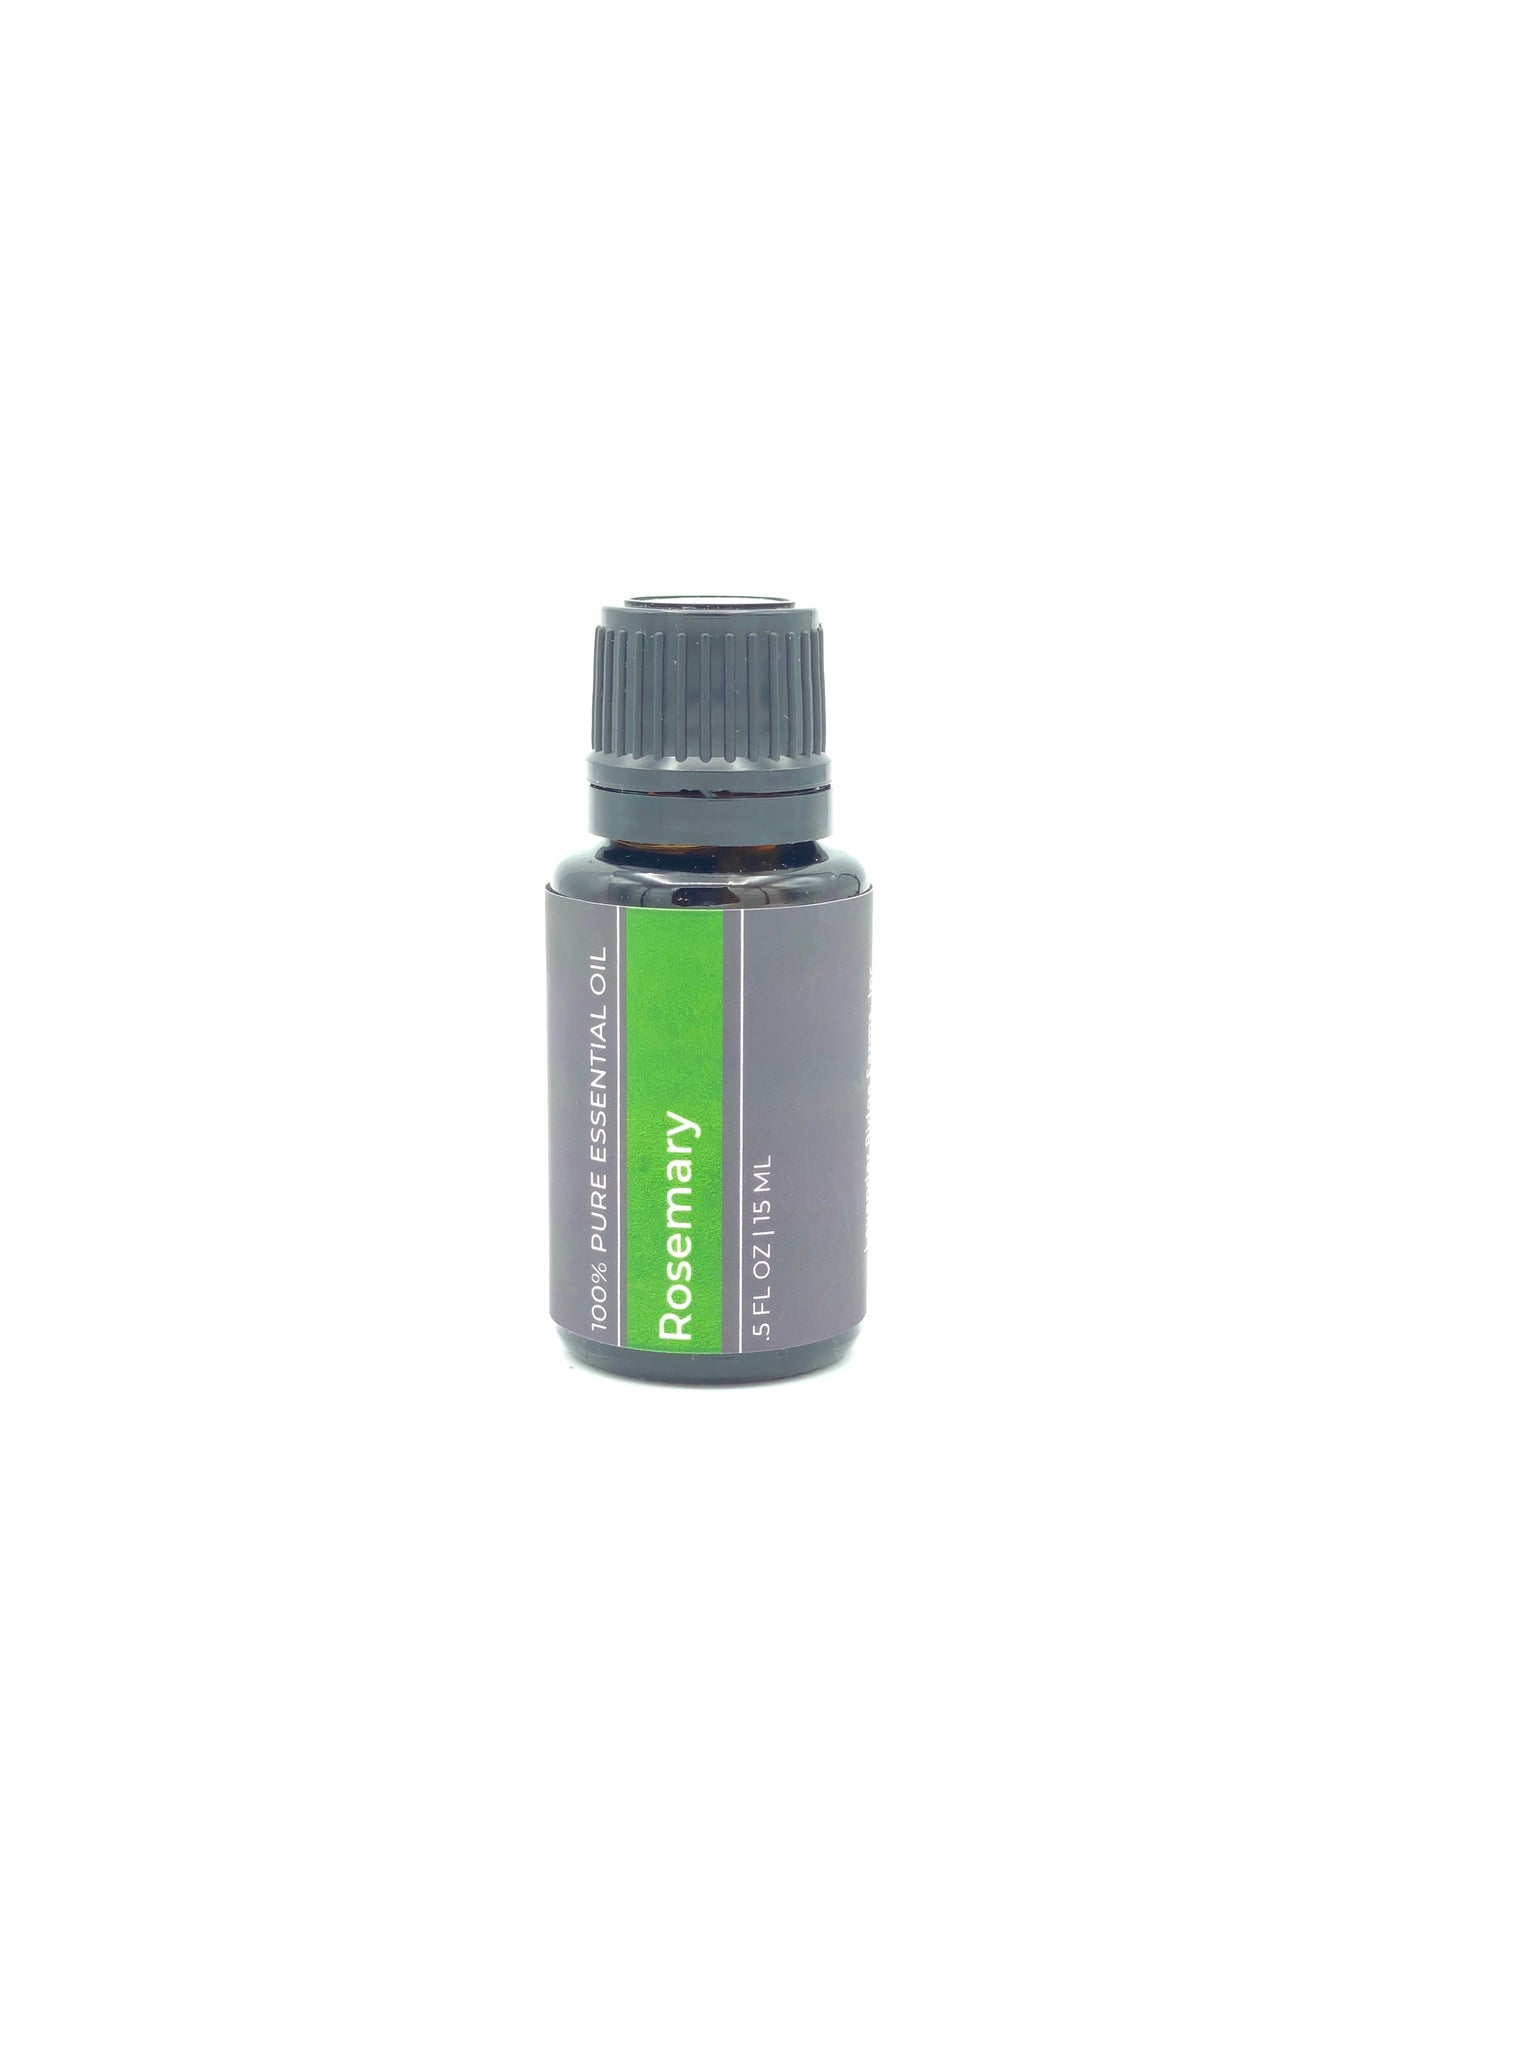 100% Pure Spanish Rosemary Essential Oil